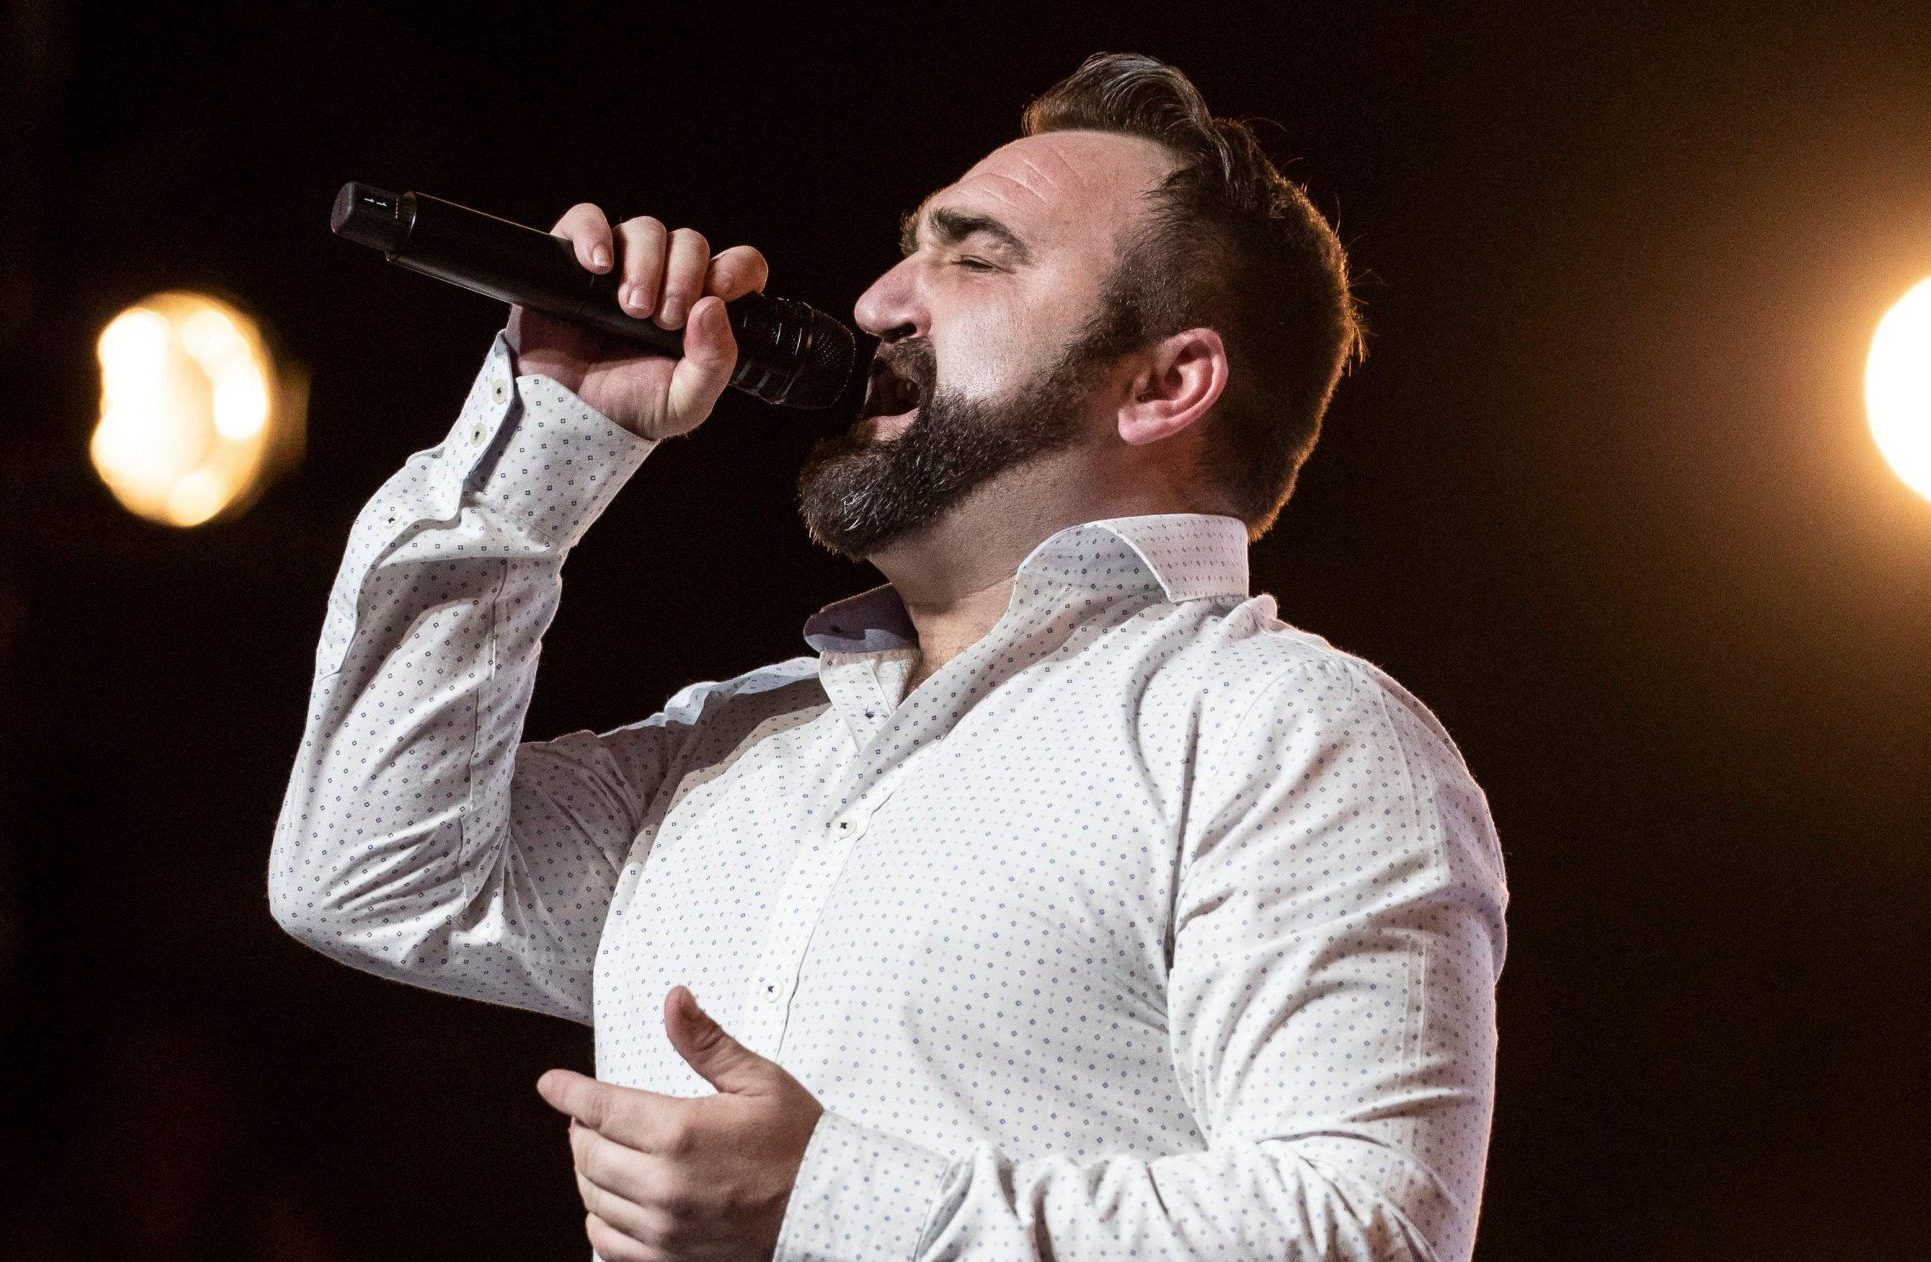 STRICT EMBARGO - NO USE BEOFRE 21:00 THURSDAY 30TH AUGUST 2018 Mandatory Credit: Photo by Dymond/Thames/Syco/REX (9838680r) Danny Tetley 'The X Factor' TV show, Series 15, Episode 1, UK - 01 Sep 2018